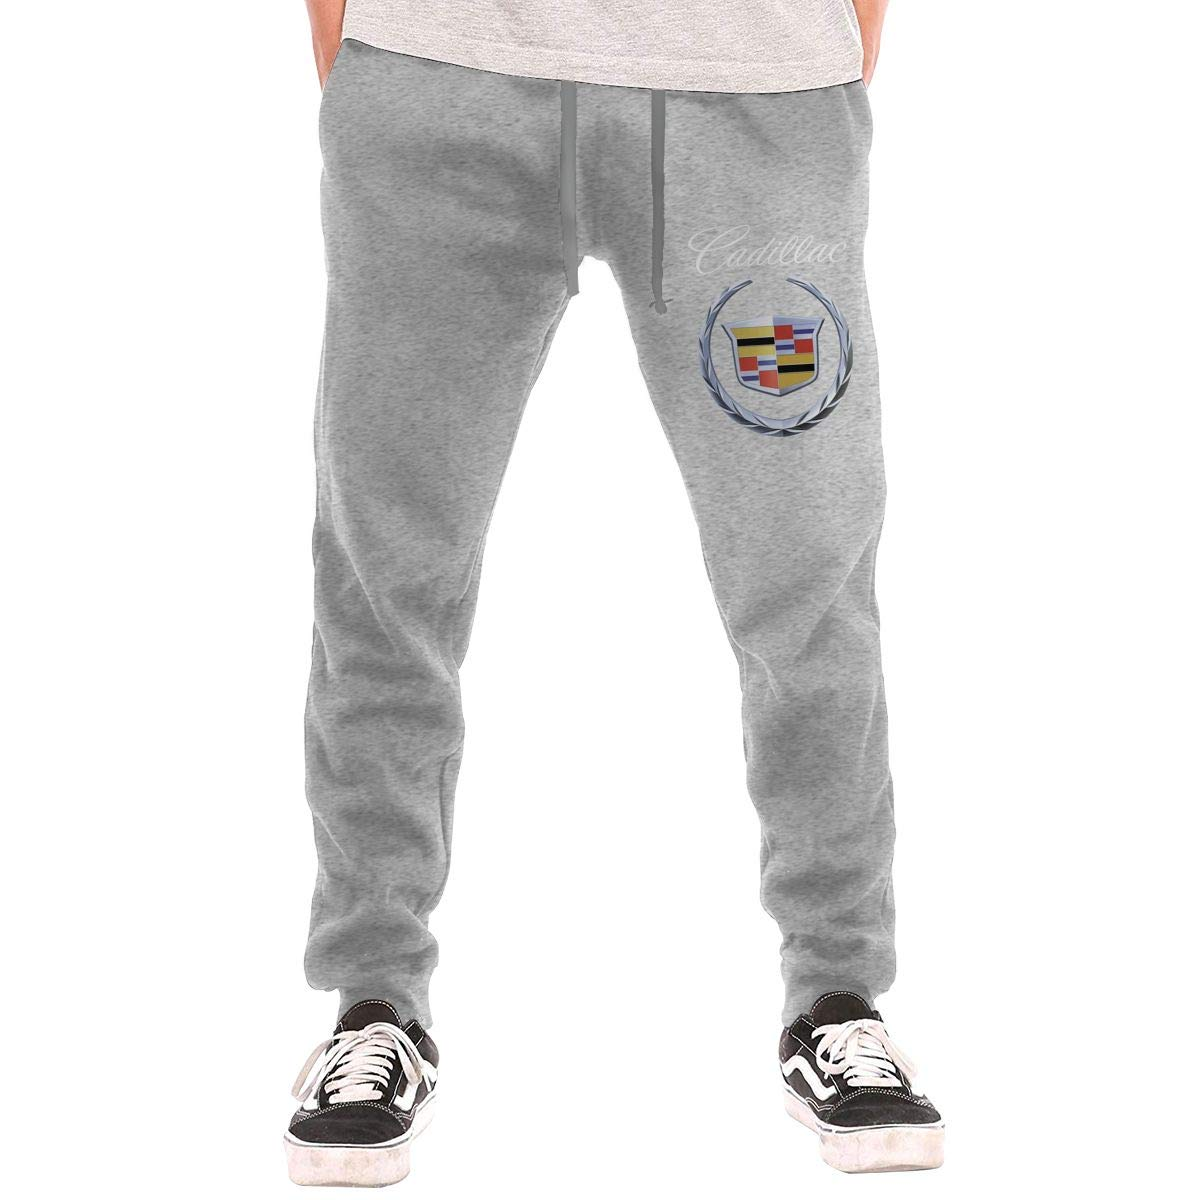 Syins Mens Personalized Cadillac 2000 Logo Cool with Pockets Training Sweatpant Black